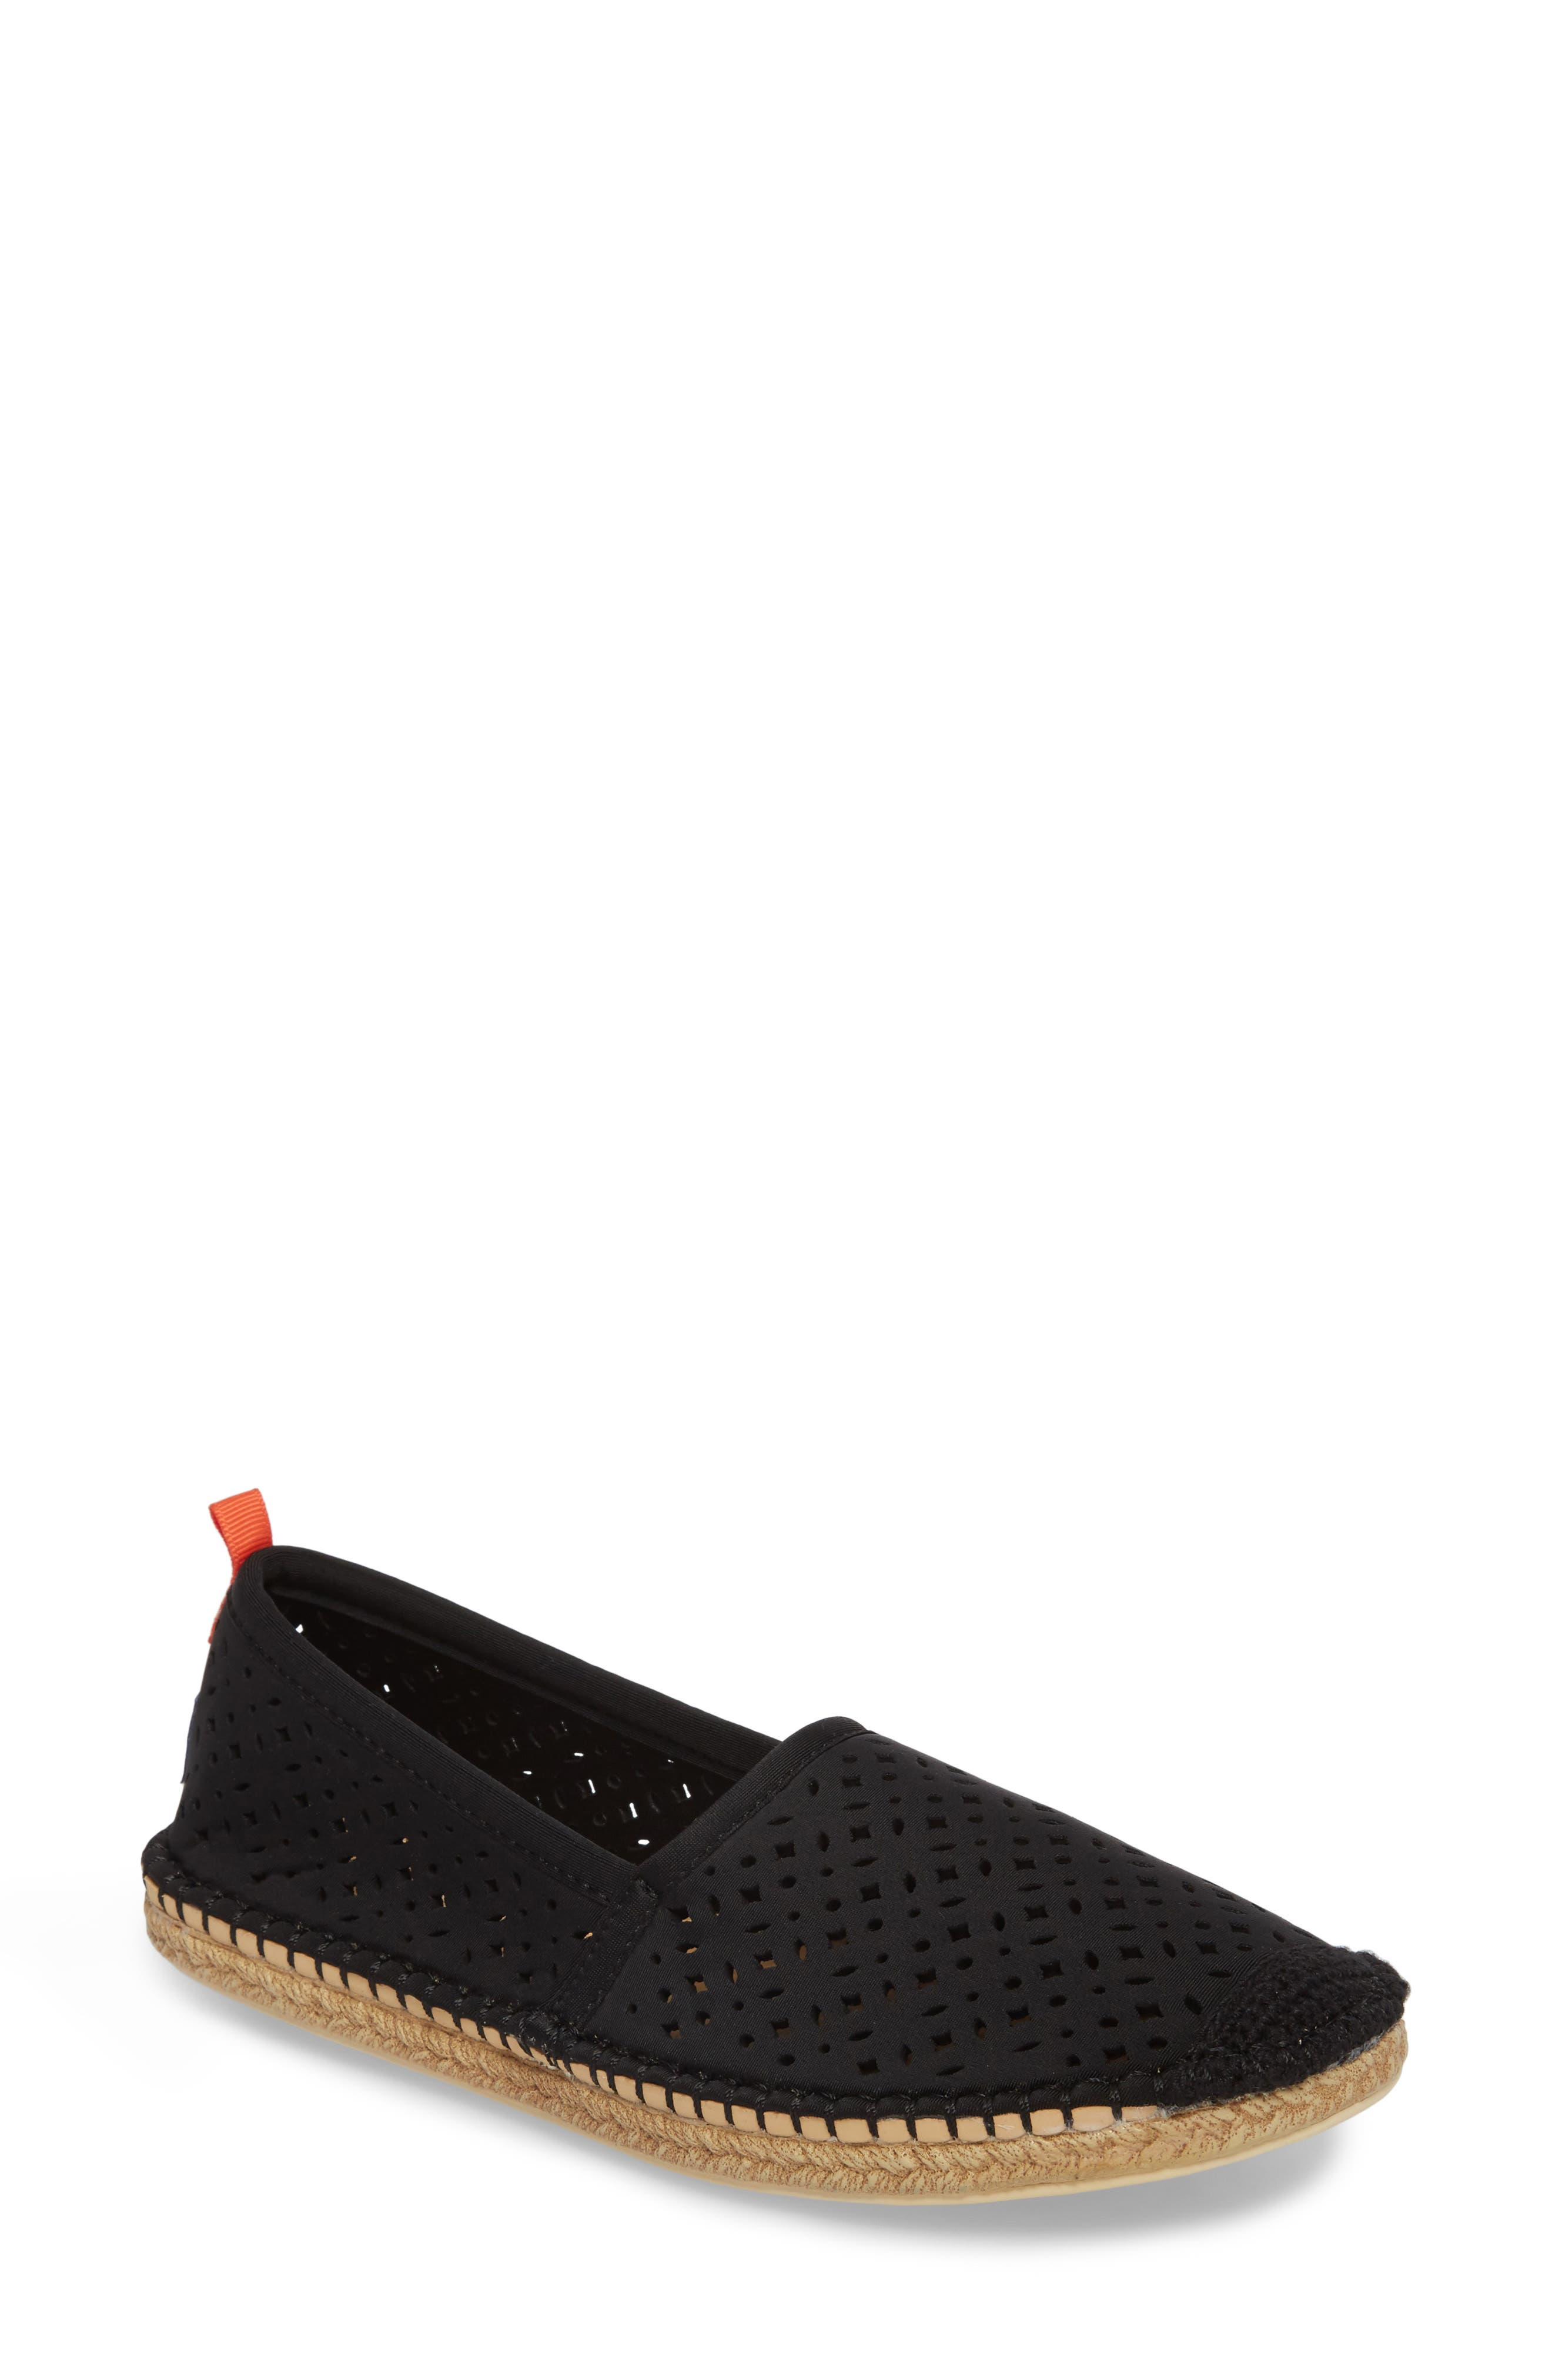 Sea Star Beachcomber Espadrille Sandal,                             Main thumbnail 1, color,                             BLACK EYELET